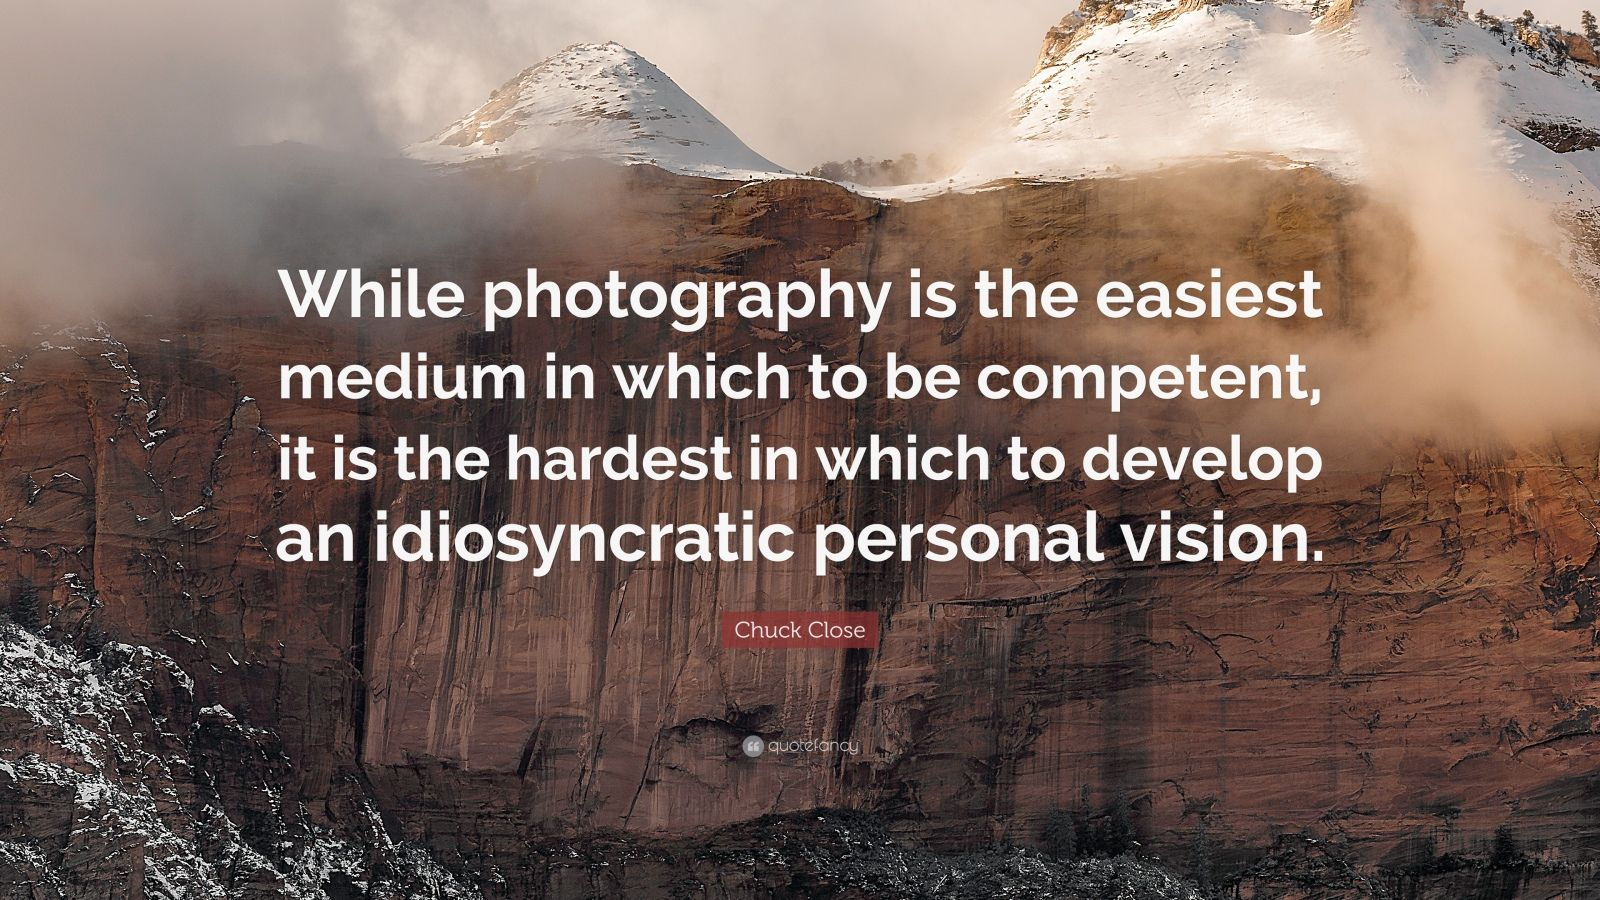 """Chuck Close Quote: """"While photography is the easiest medium in which to be competent, it is the hardest in which to develop an idiosyncratic personal vision."""""""